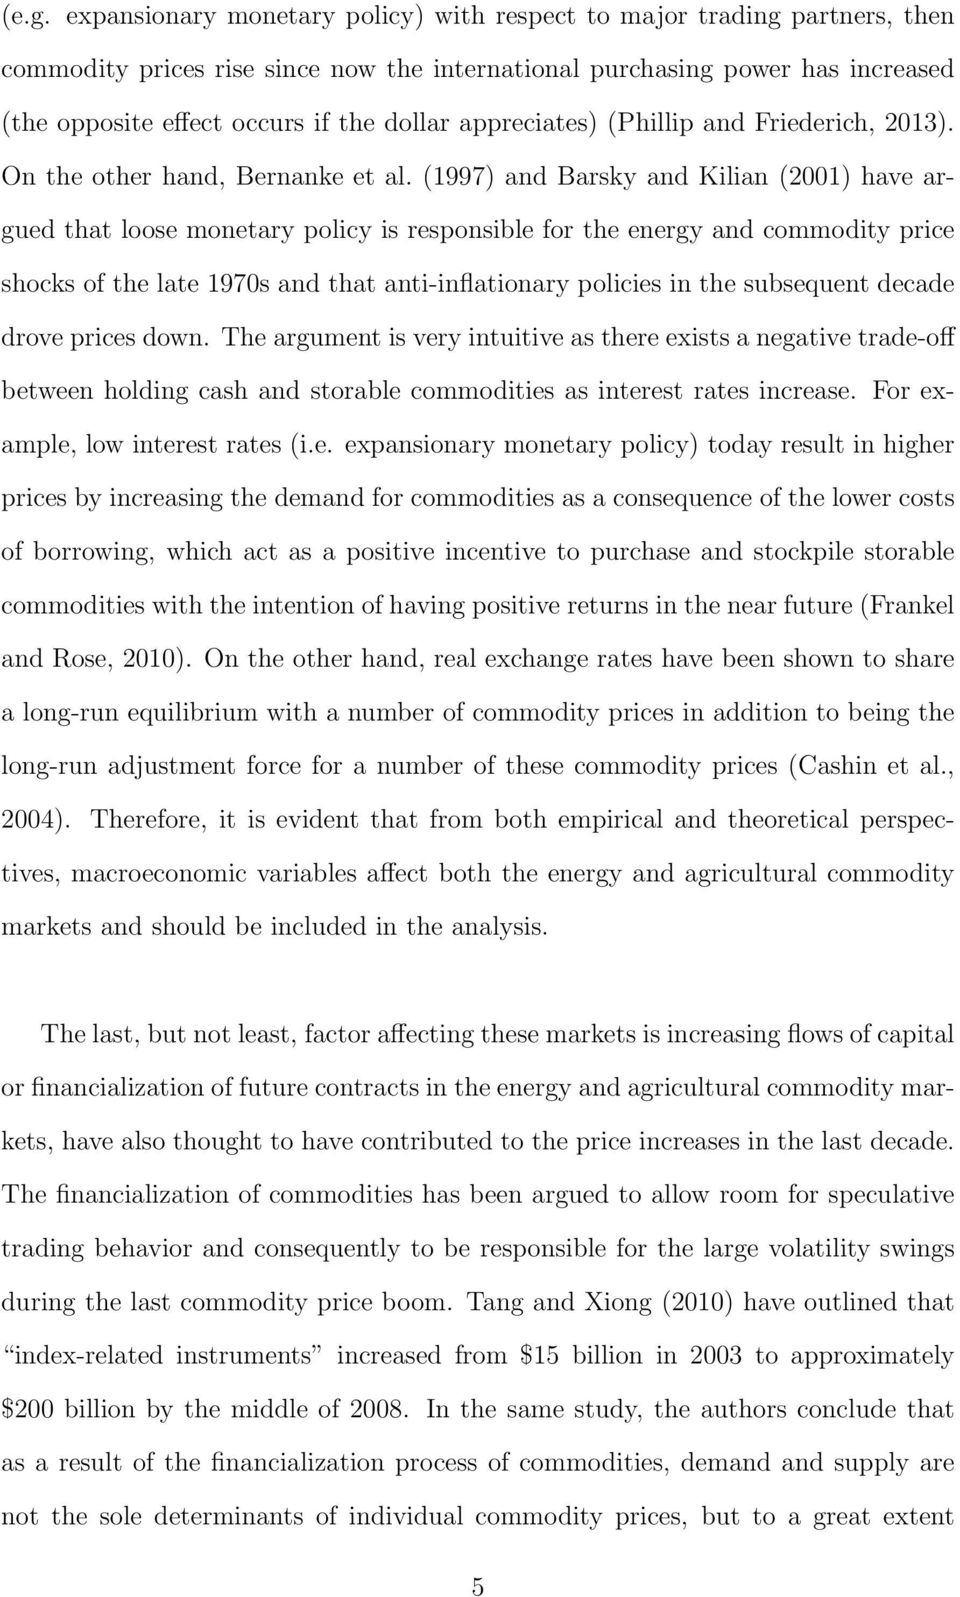 (1997) and Barsky and Kilian (2001) have argued that loose monetary policy is responsible for the energy and commodity price shocks of the late 1970s and that anti-inflationary policies in the